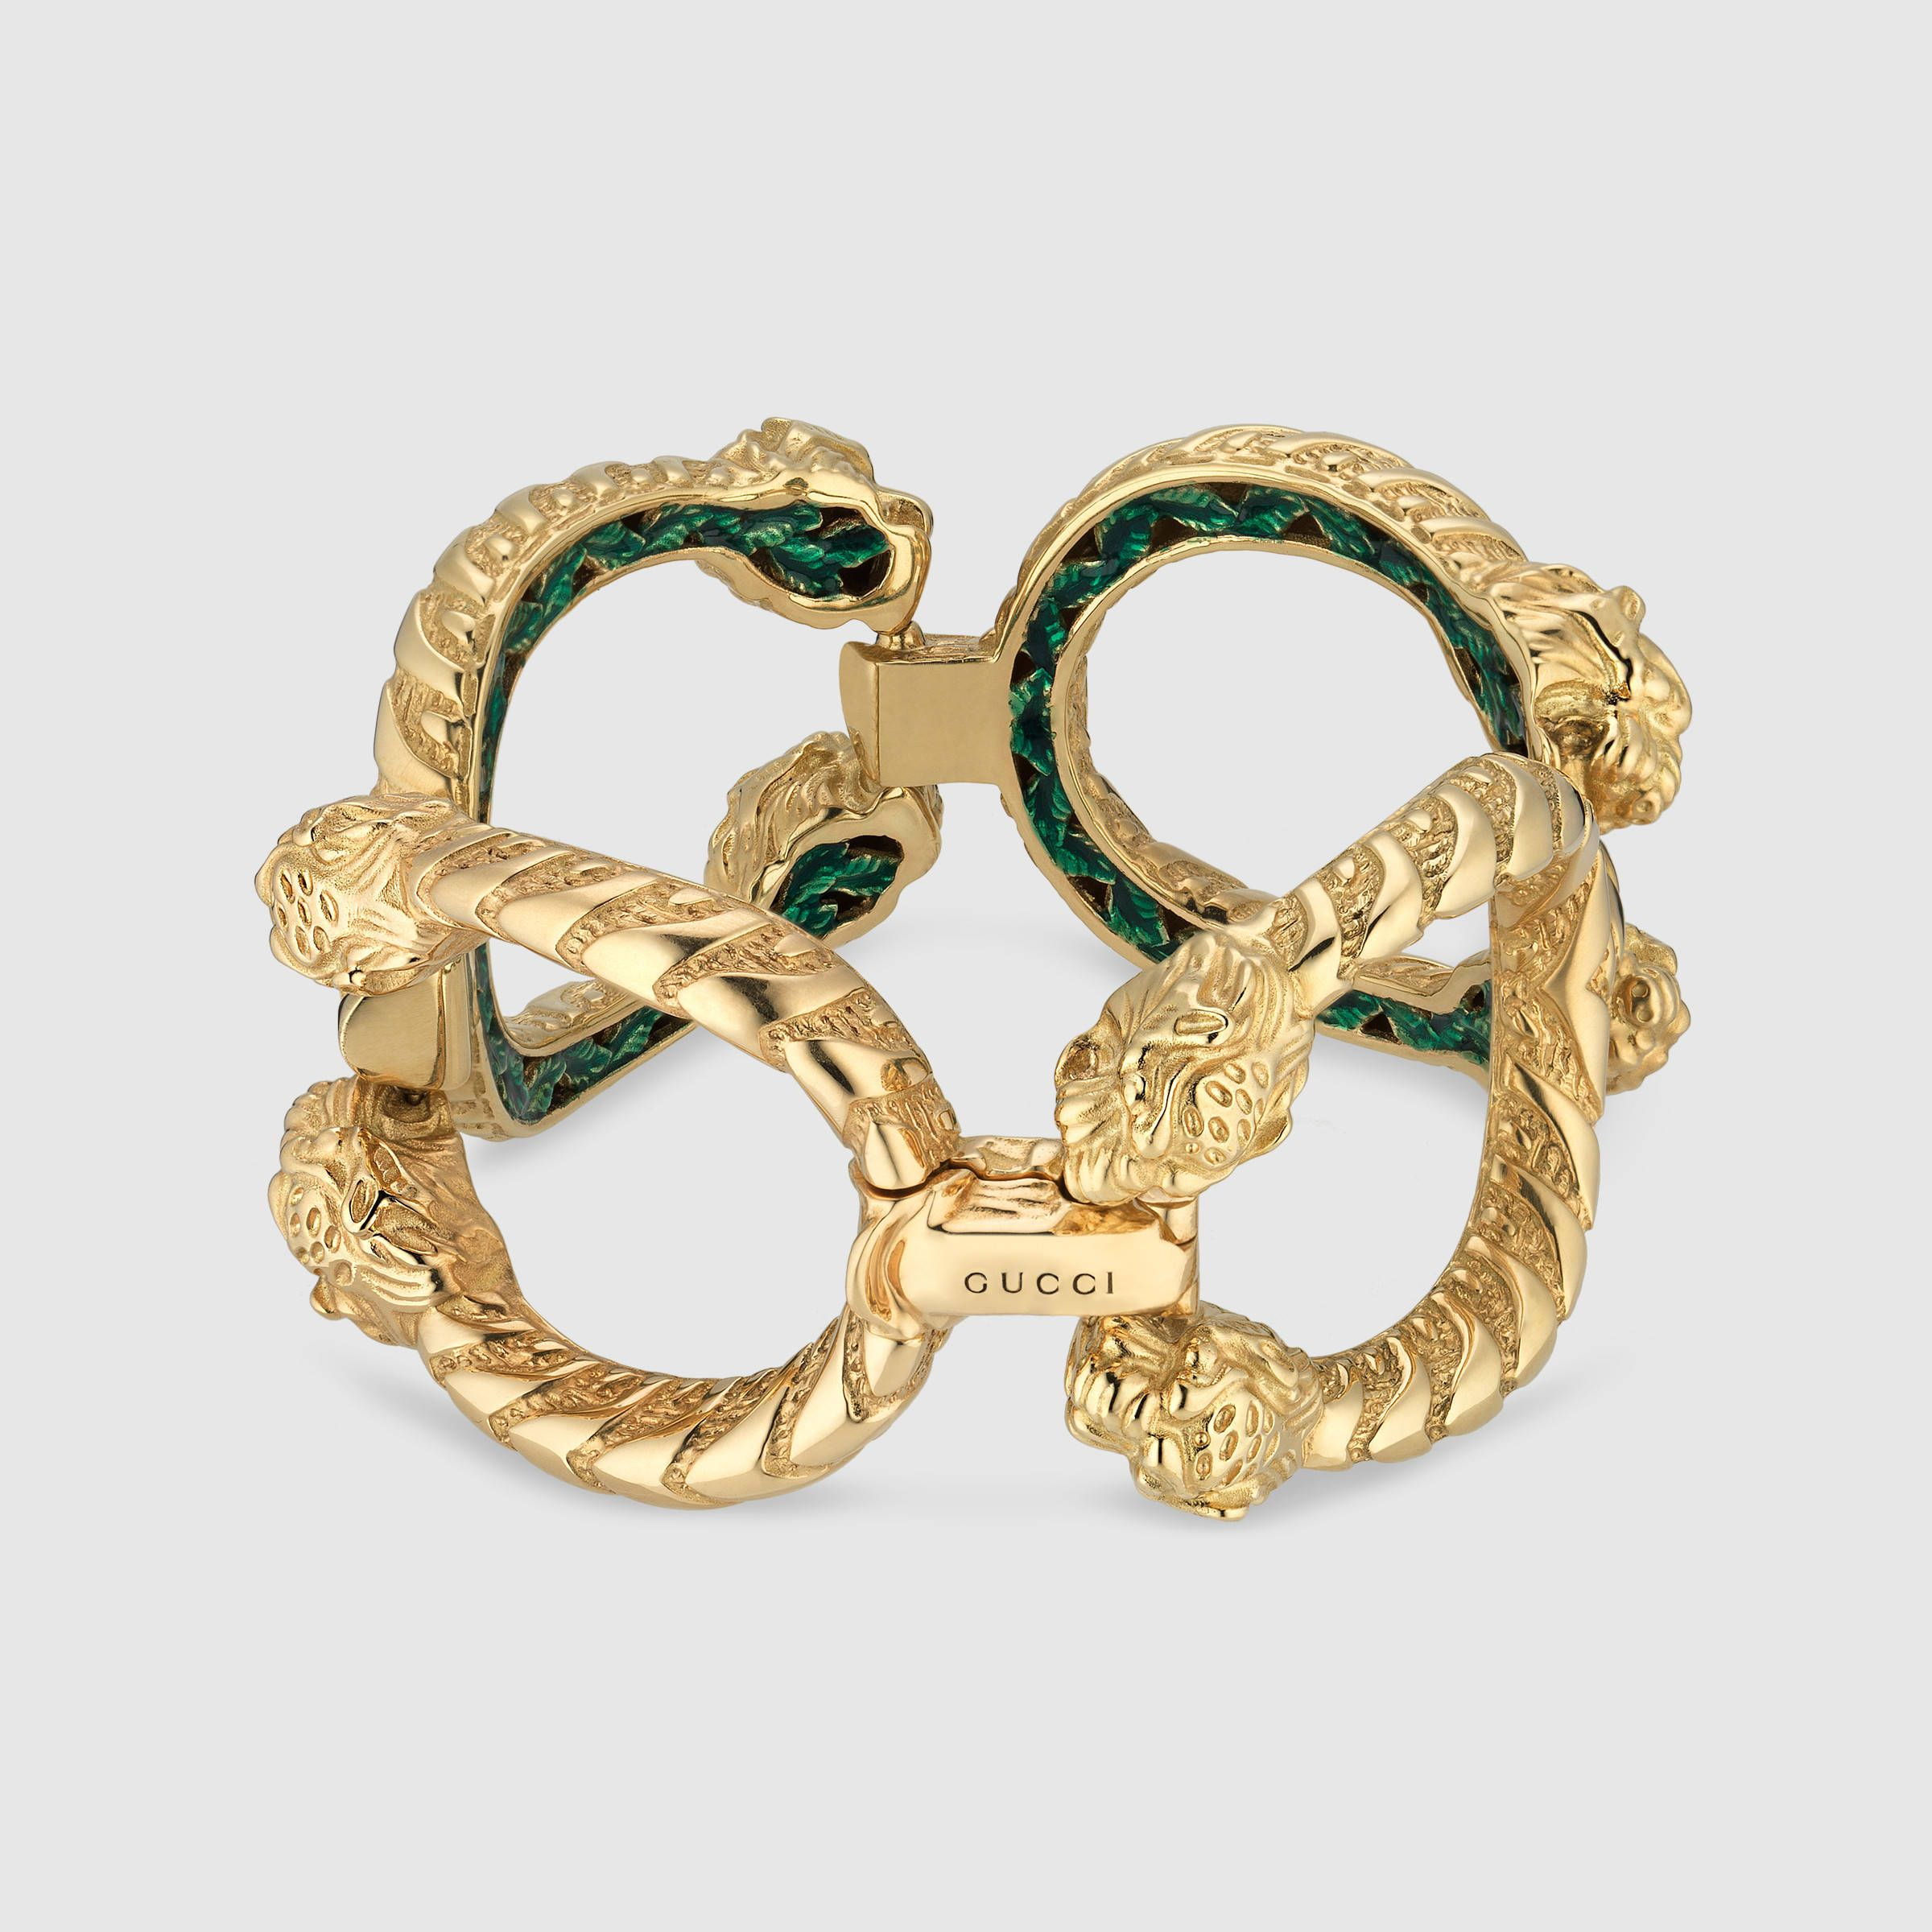 Dionysus bracelet in yellow gold bracelets pinterest gucci